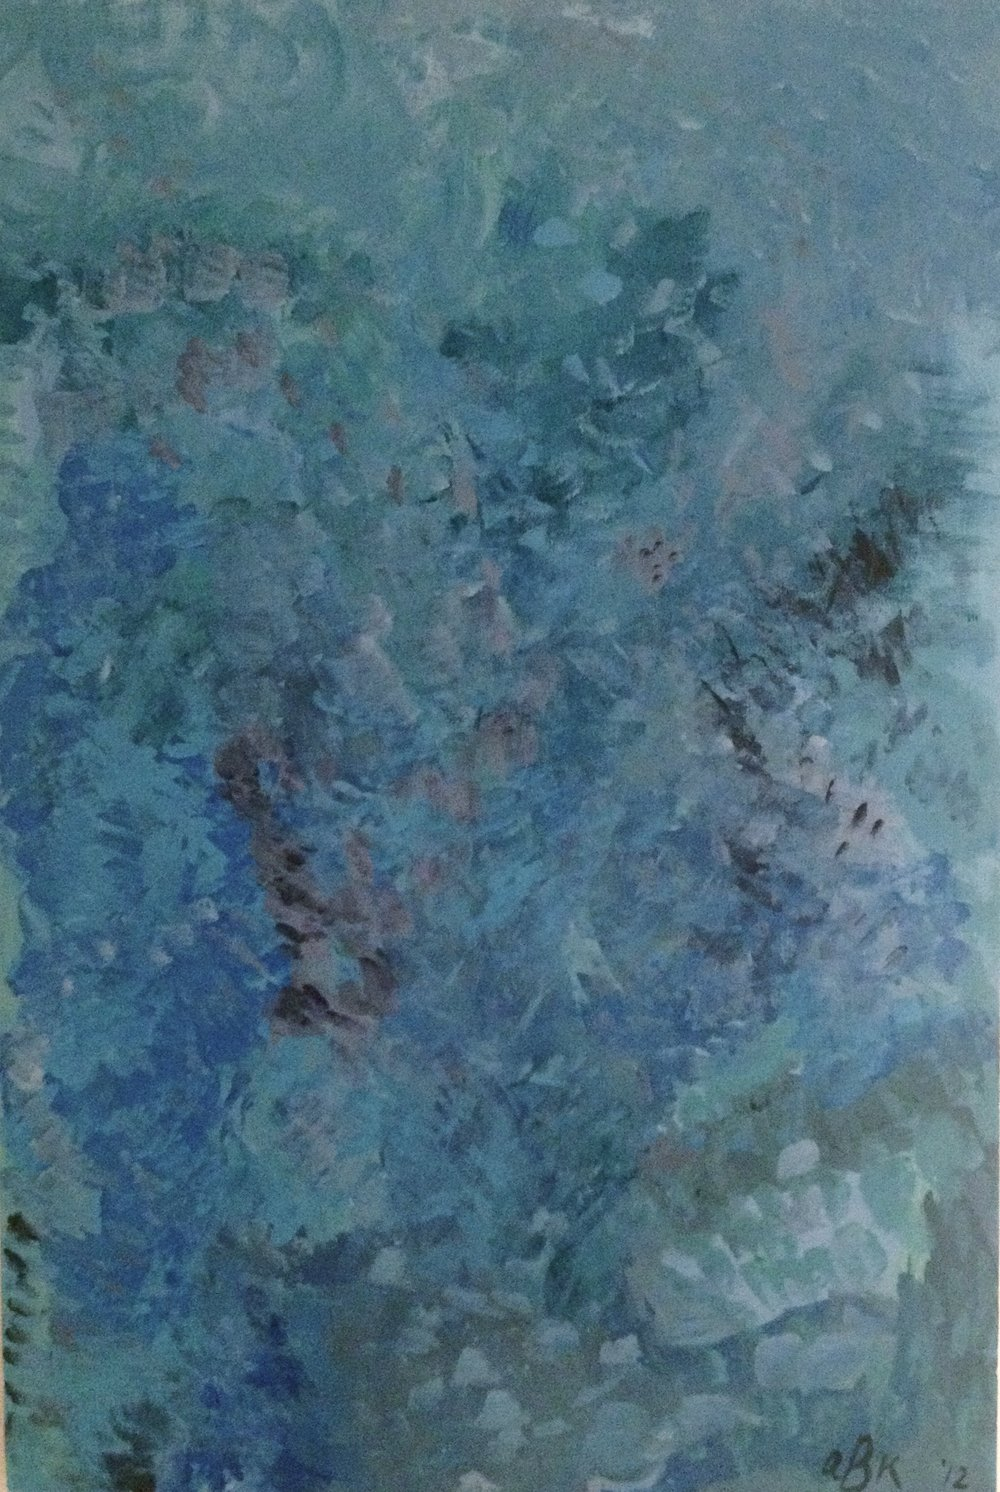 Blue, 2012.0Acrylic on Canvas.